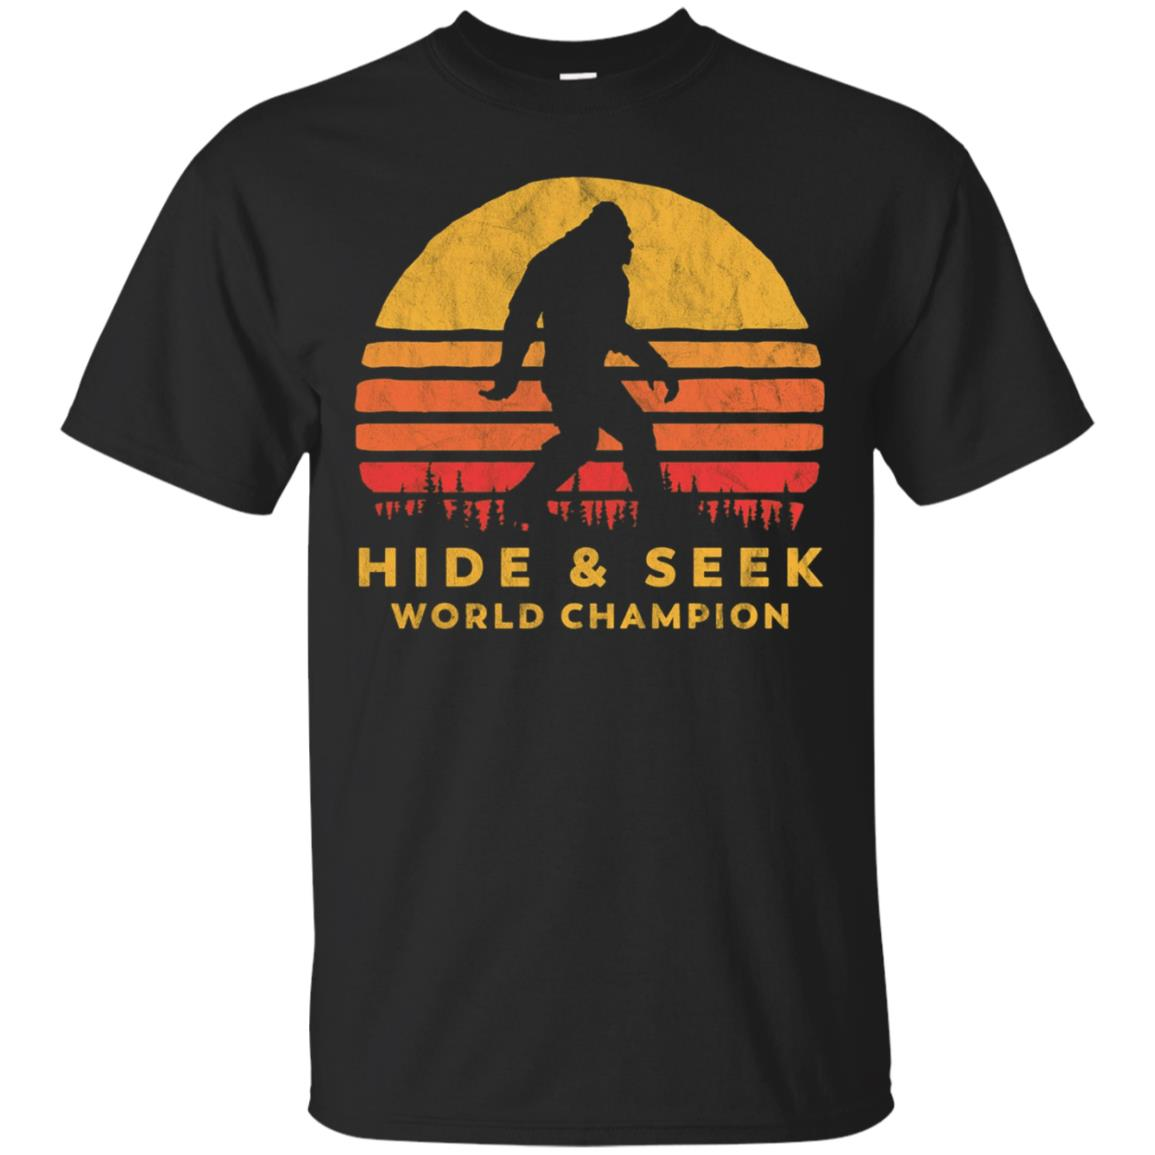 Retro Hide & Seek World Champ Bigfoot Sun Tee - Believe!